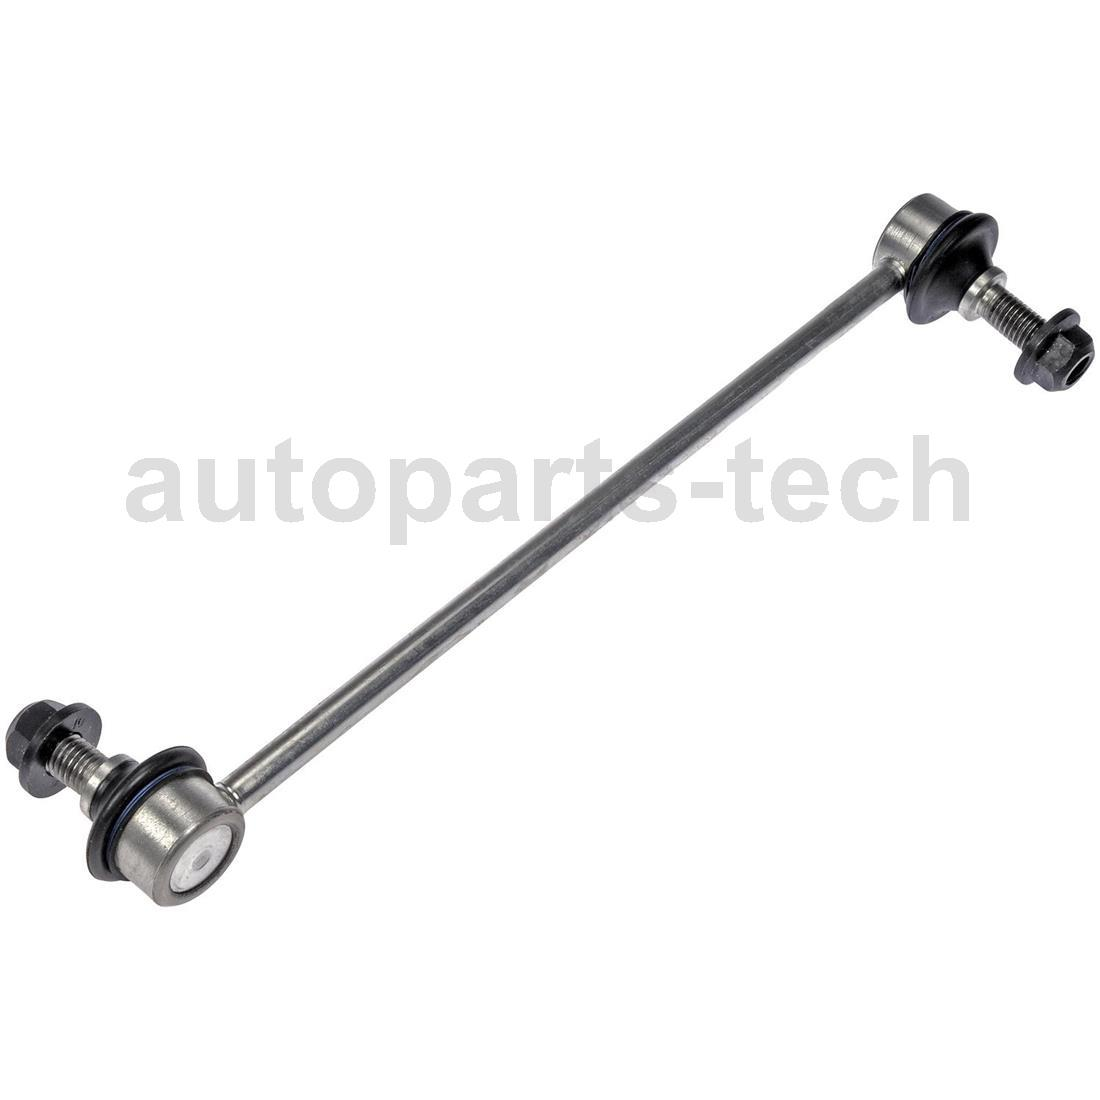 2 Front Sway Bar Stabilizer Link for 2012-2015 Chevrolet Sonic Lifetime Warranty